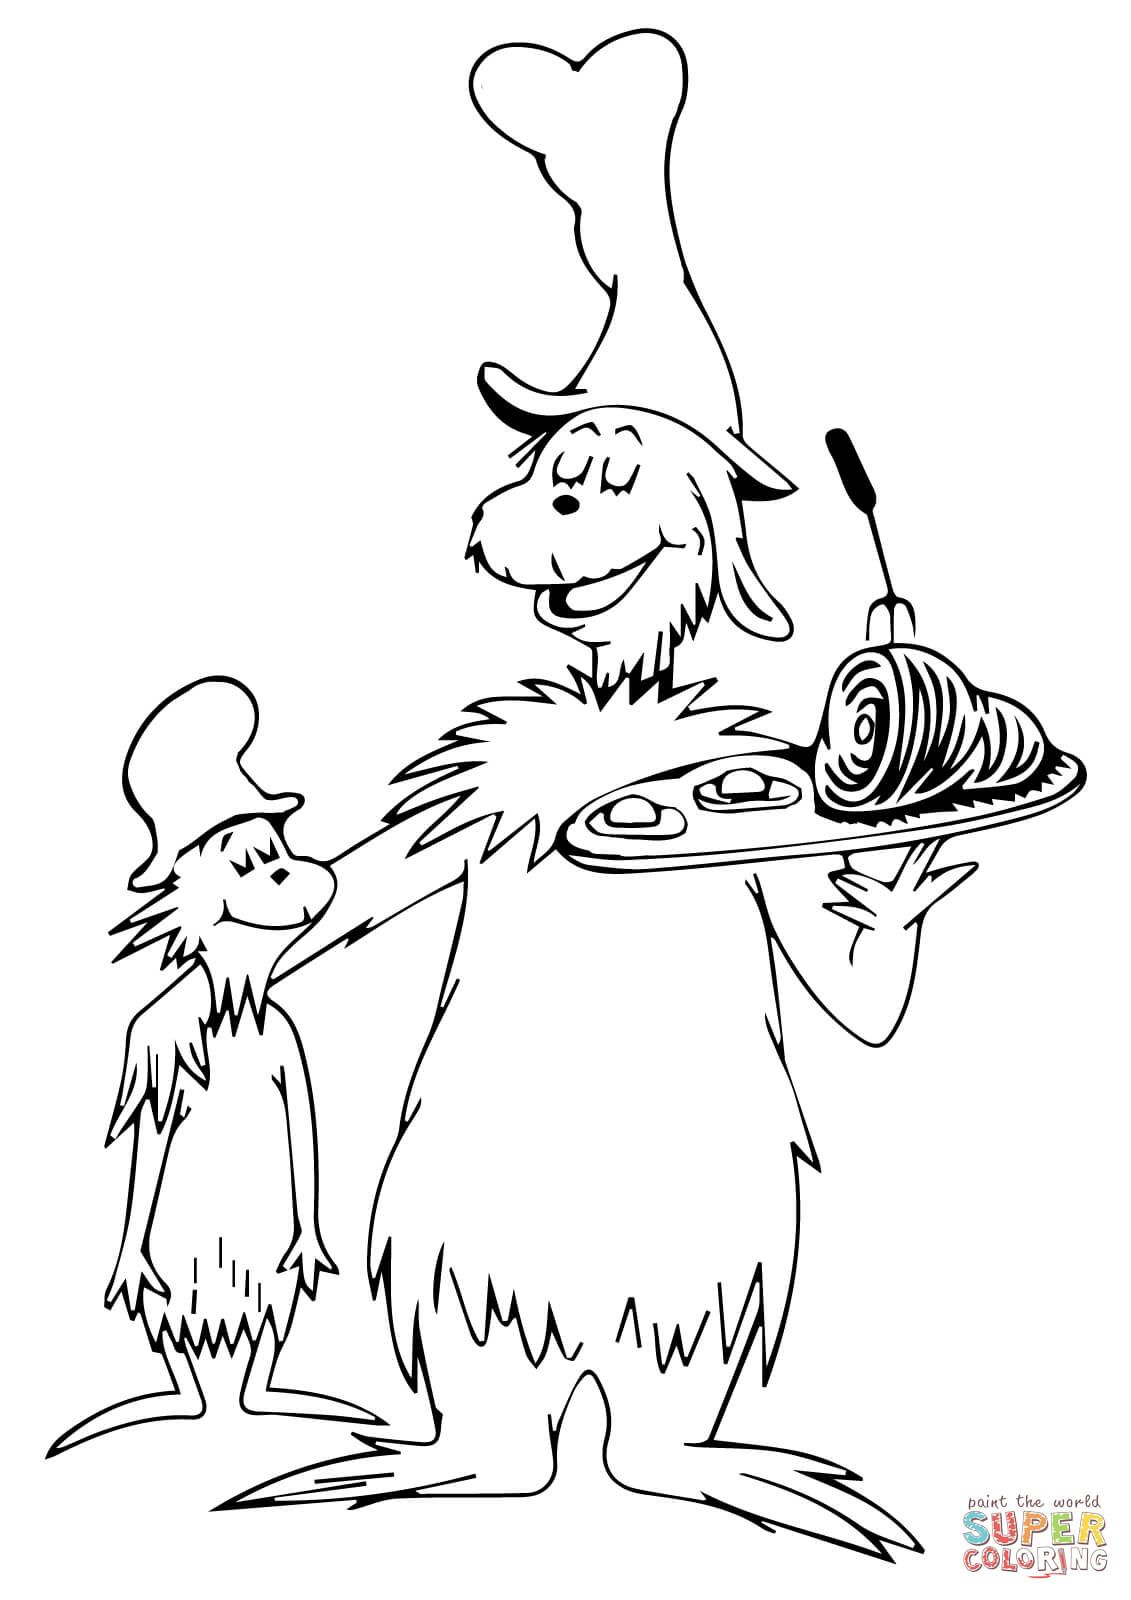 dr seuss coloring pages green eggs and ham green eggs and ham coloring pages various episodes k5 ham coloring dr pages eggs green seuss and